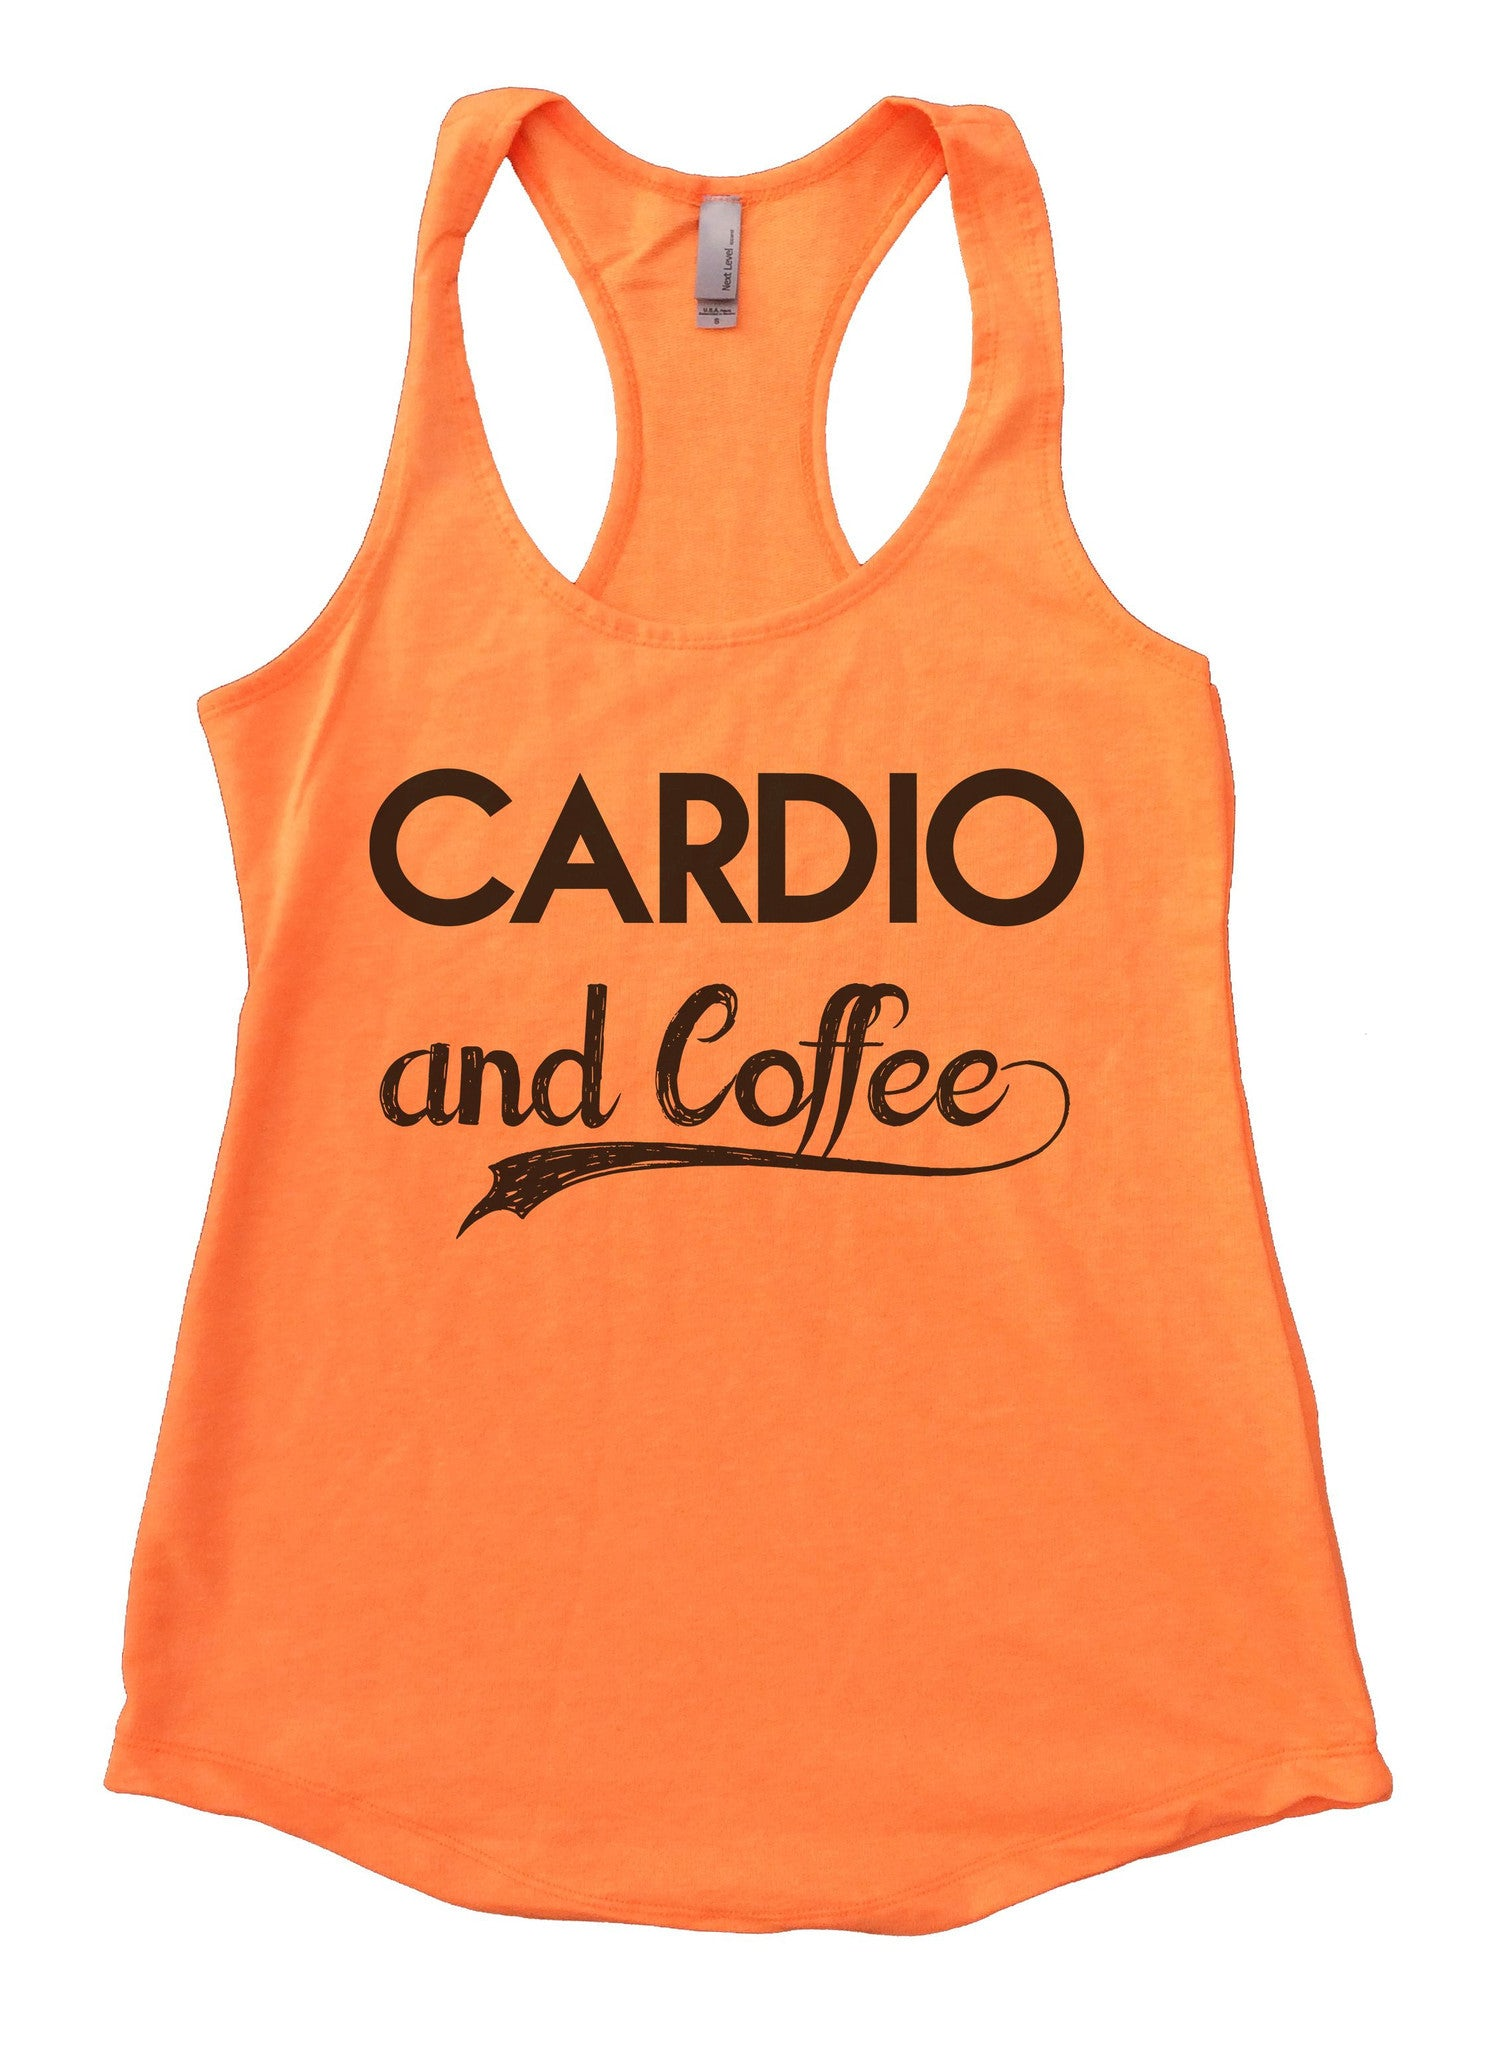 Cardio And Coffee Womens Workout Tank Top F797 - Funny Shirts Tank Tops Burnouts and Triblends  - 6